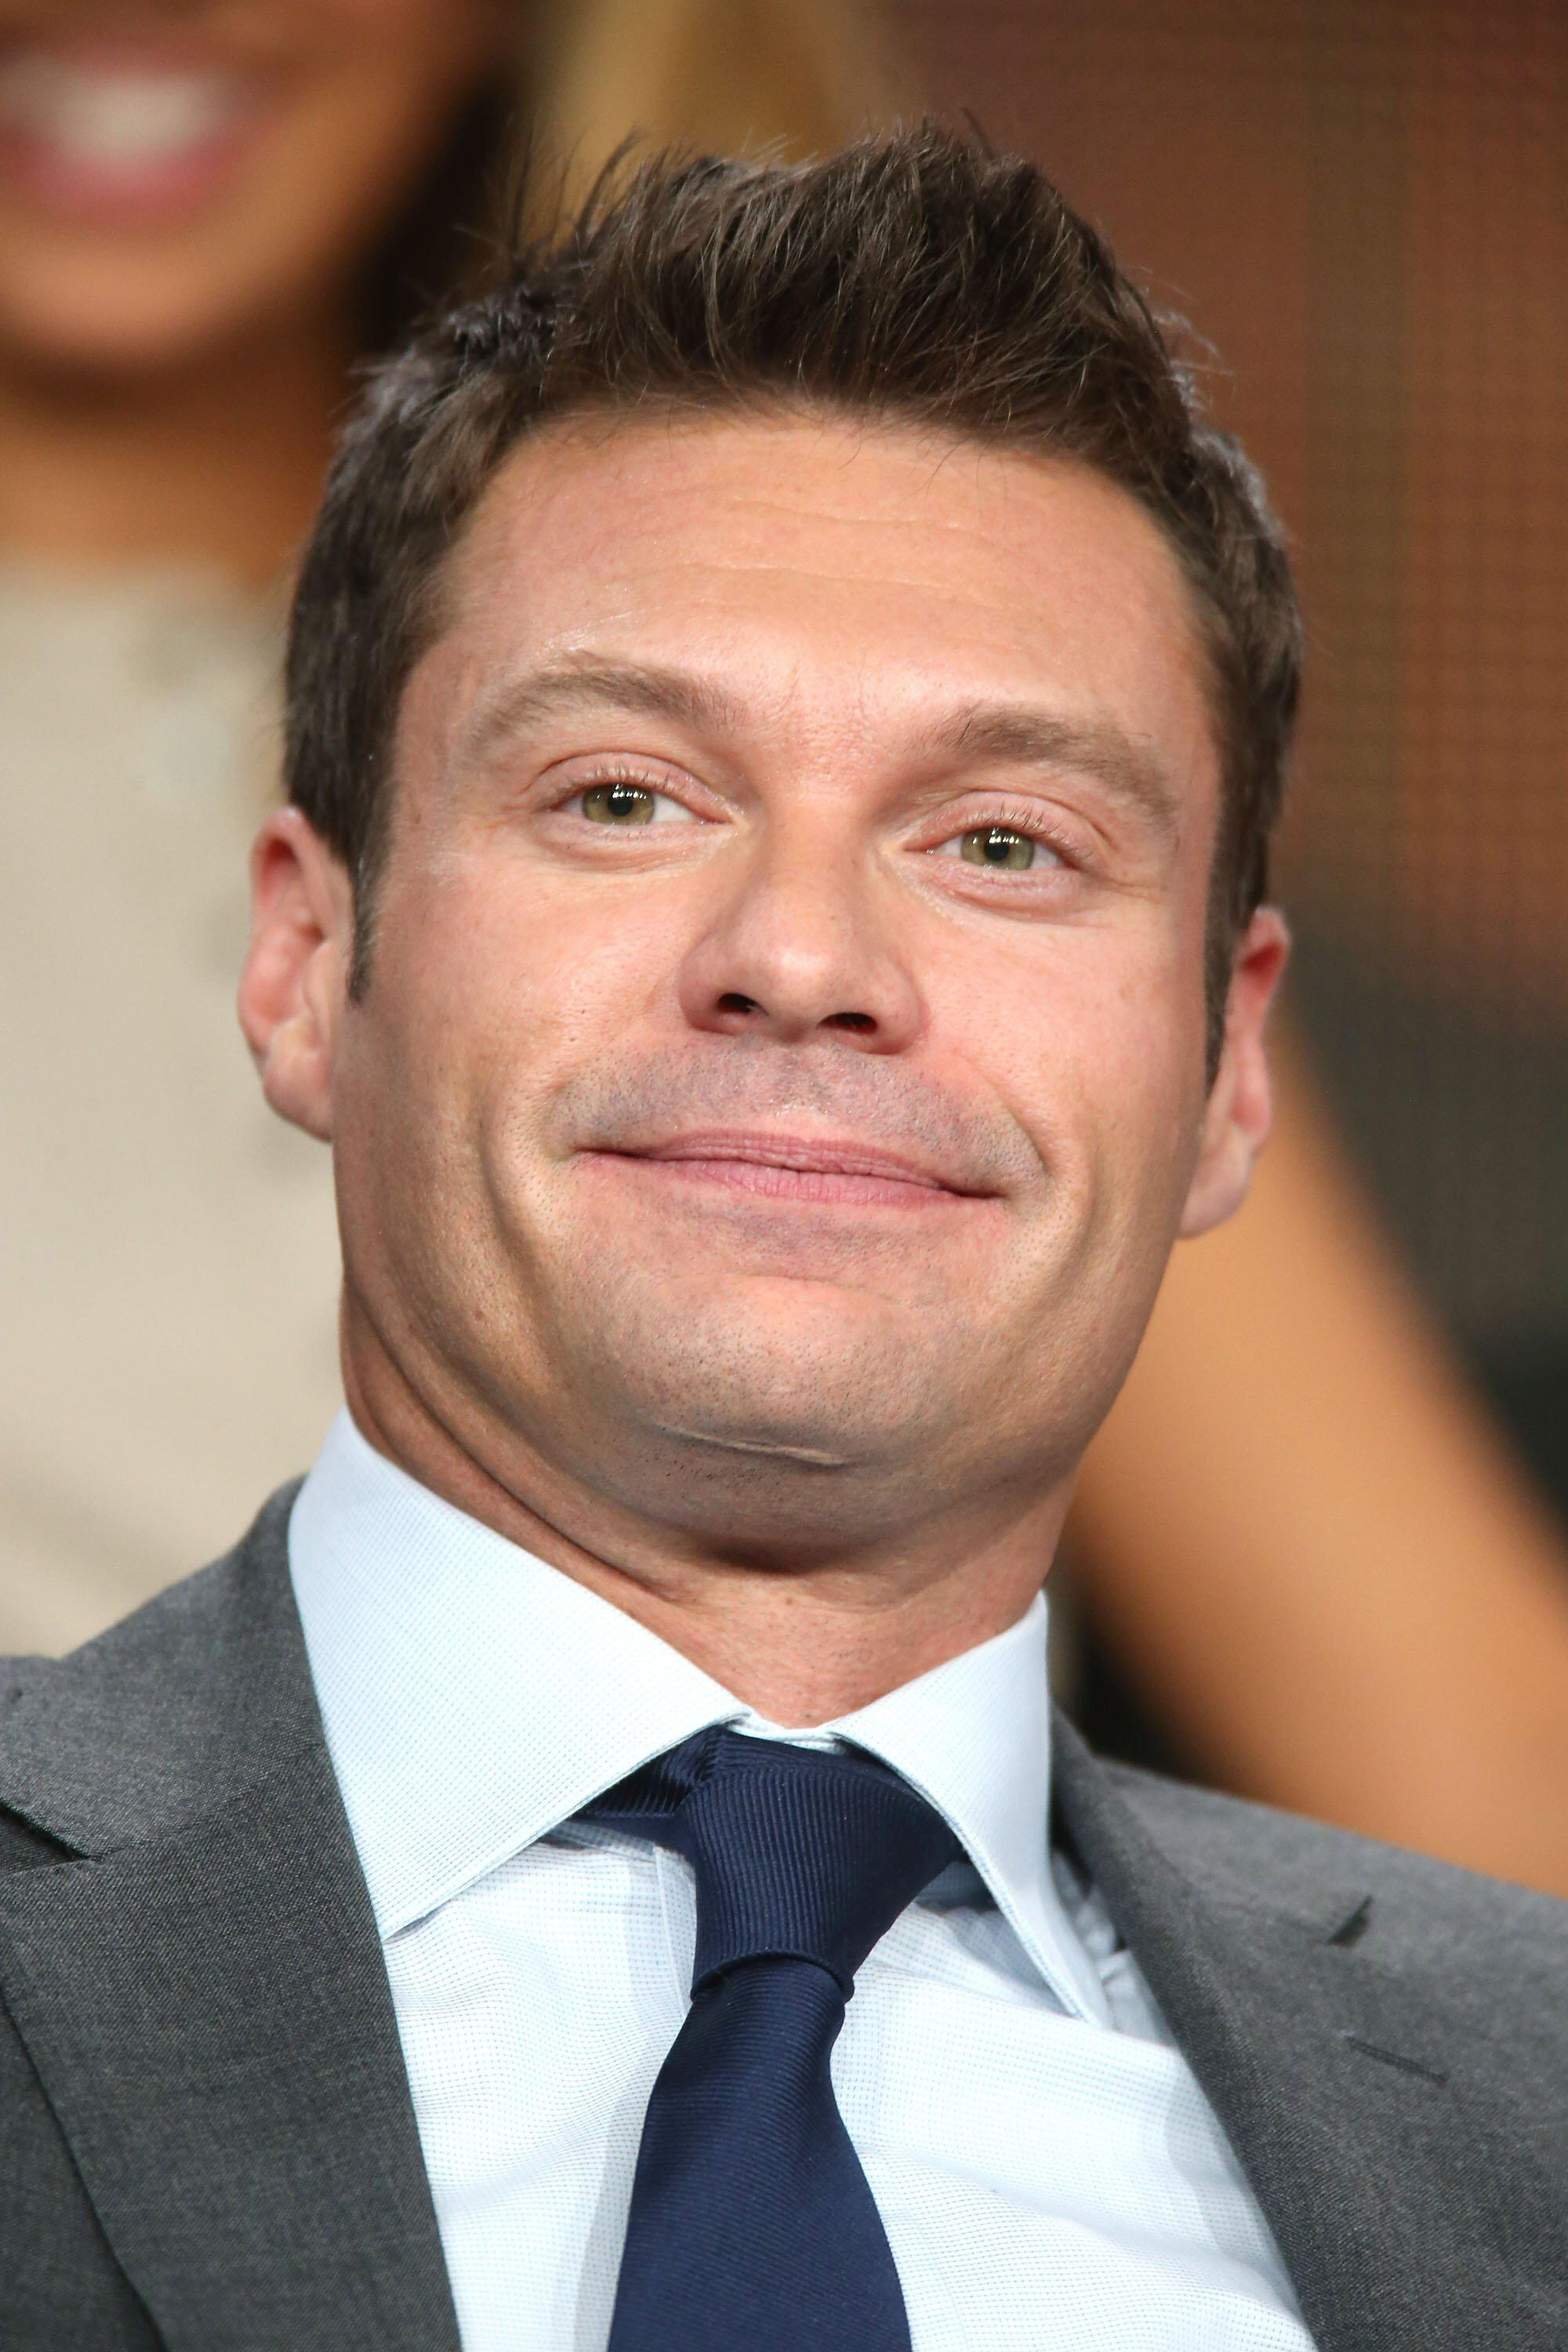 Ryan Seacrest To Host 'Knock Knock Live' For Fox This Summer